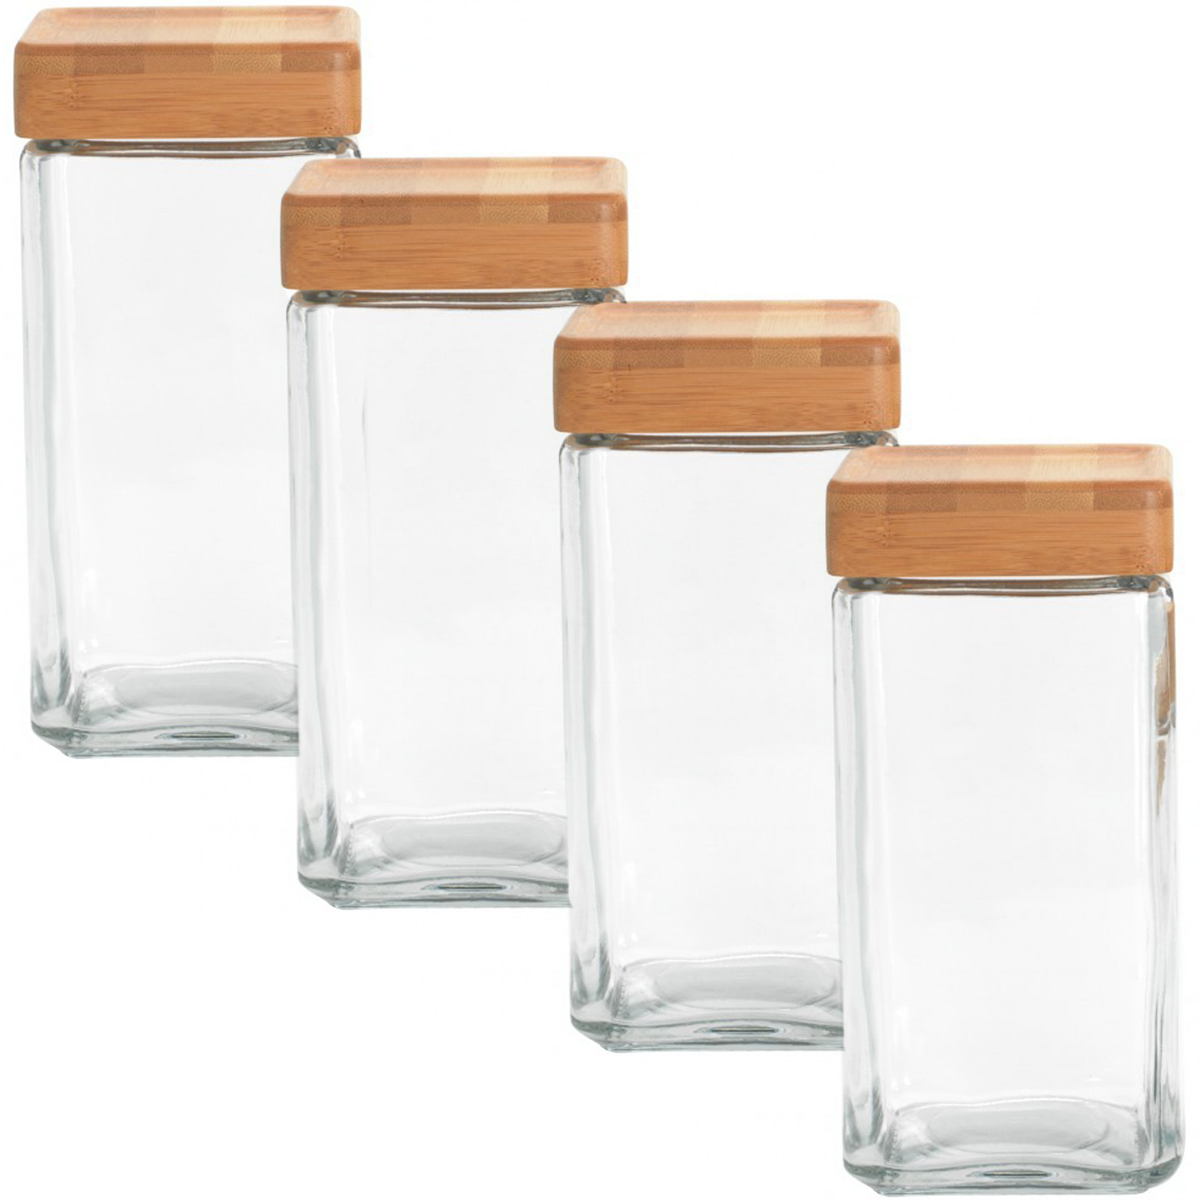 Anchor Hocking 4 Pack, 2Qt Airtight Glass Jars Set With Bamboo Lids  Stackable Food Storage